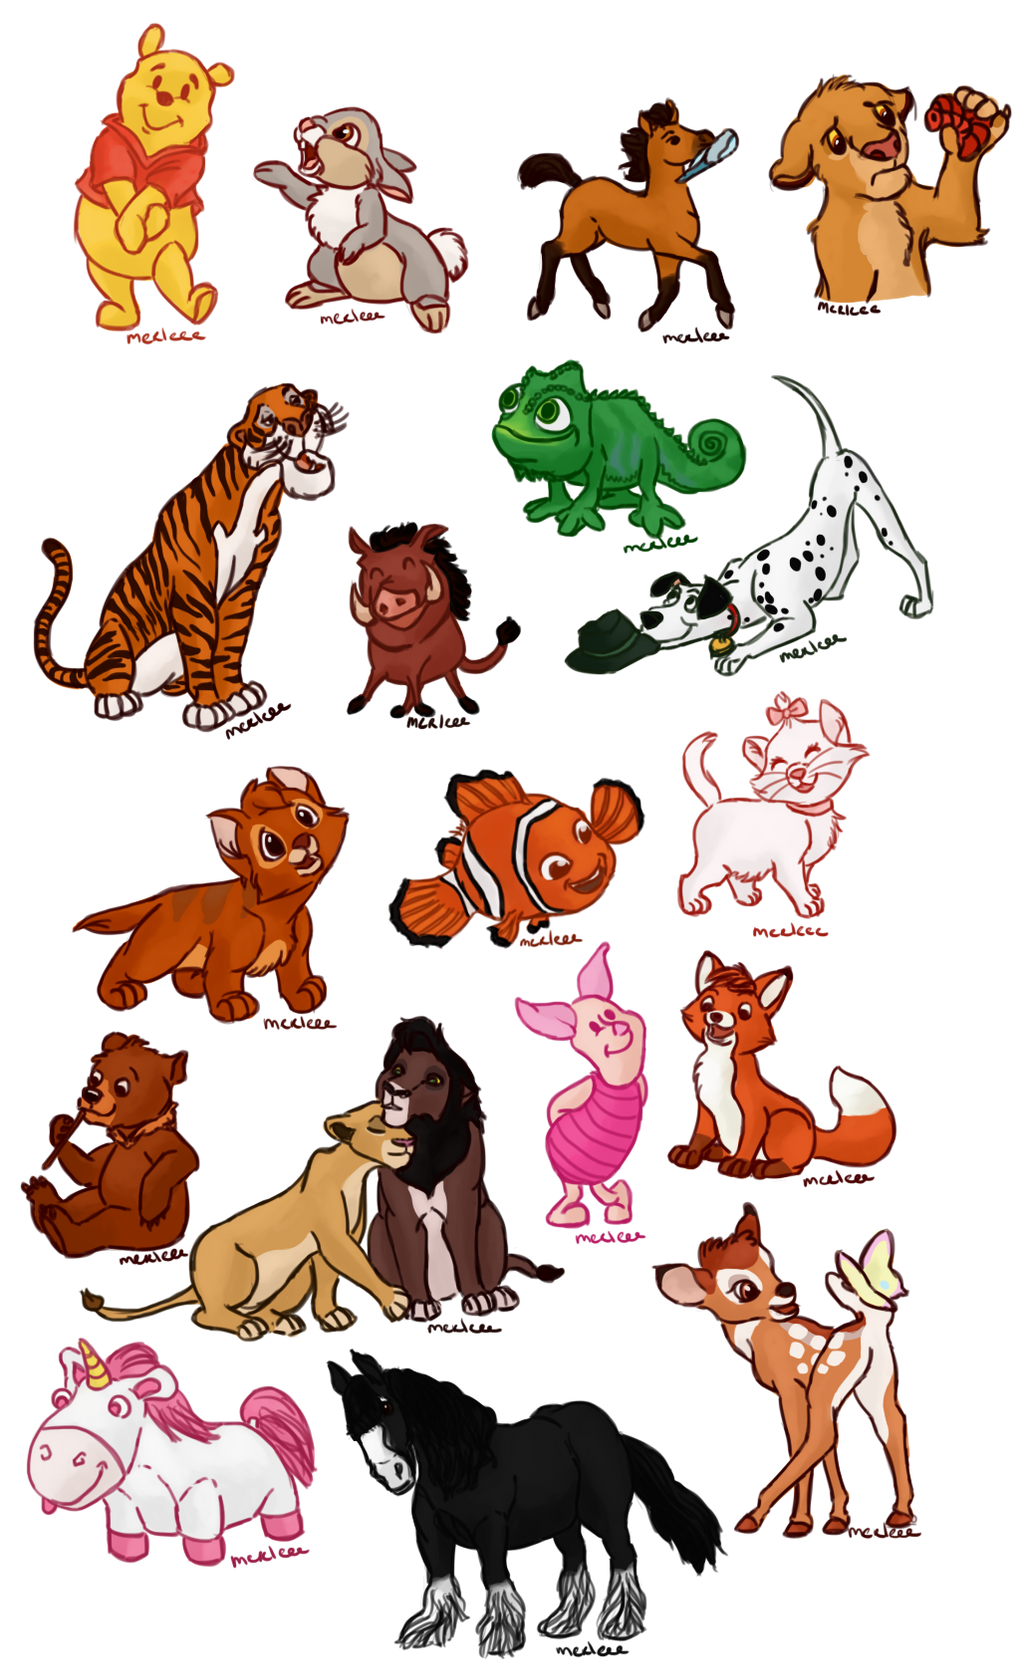 Disney Animals by Merleee on DeviantArt